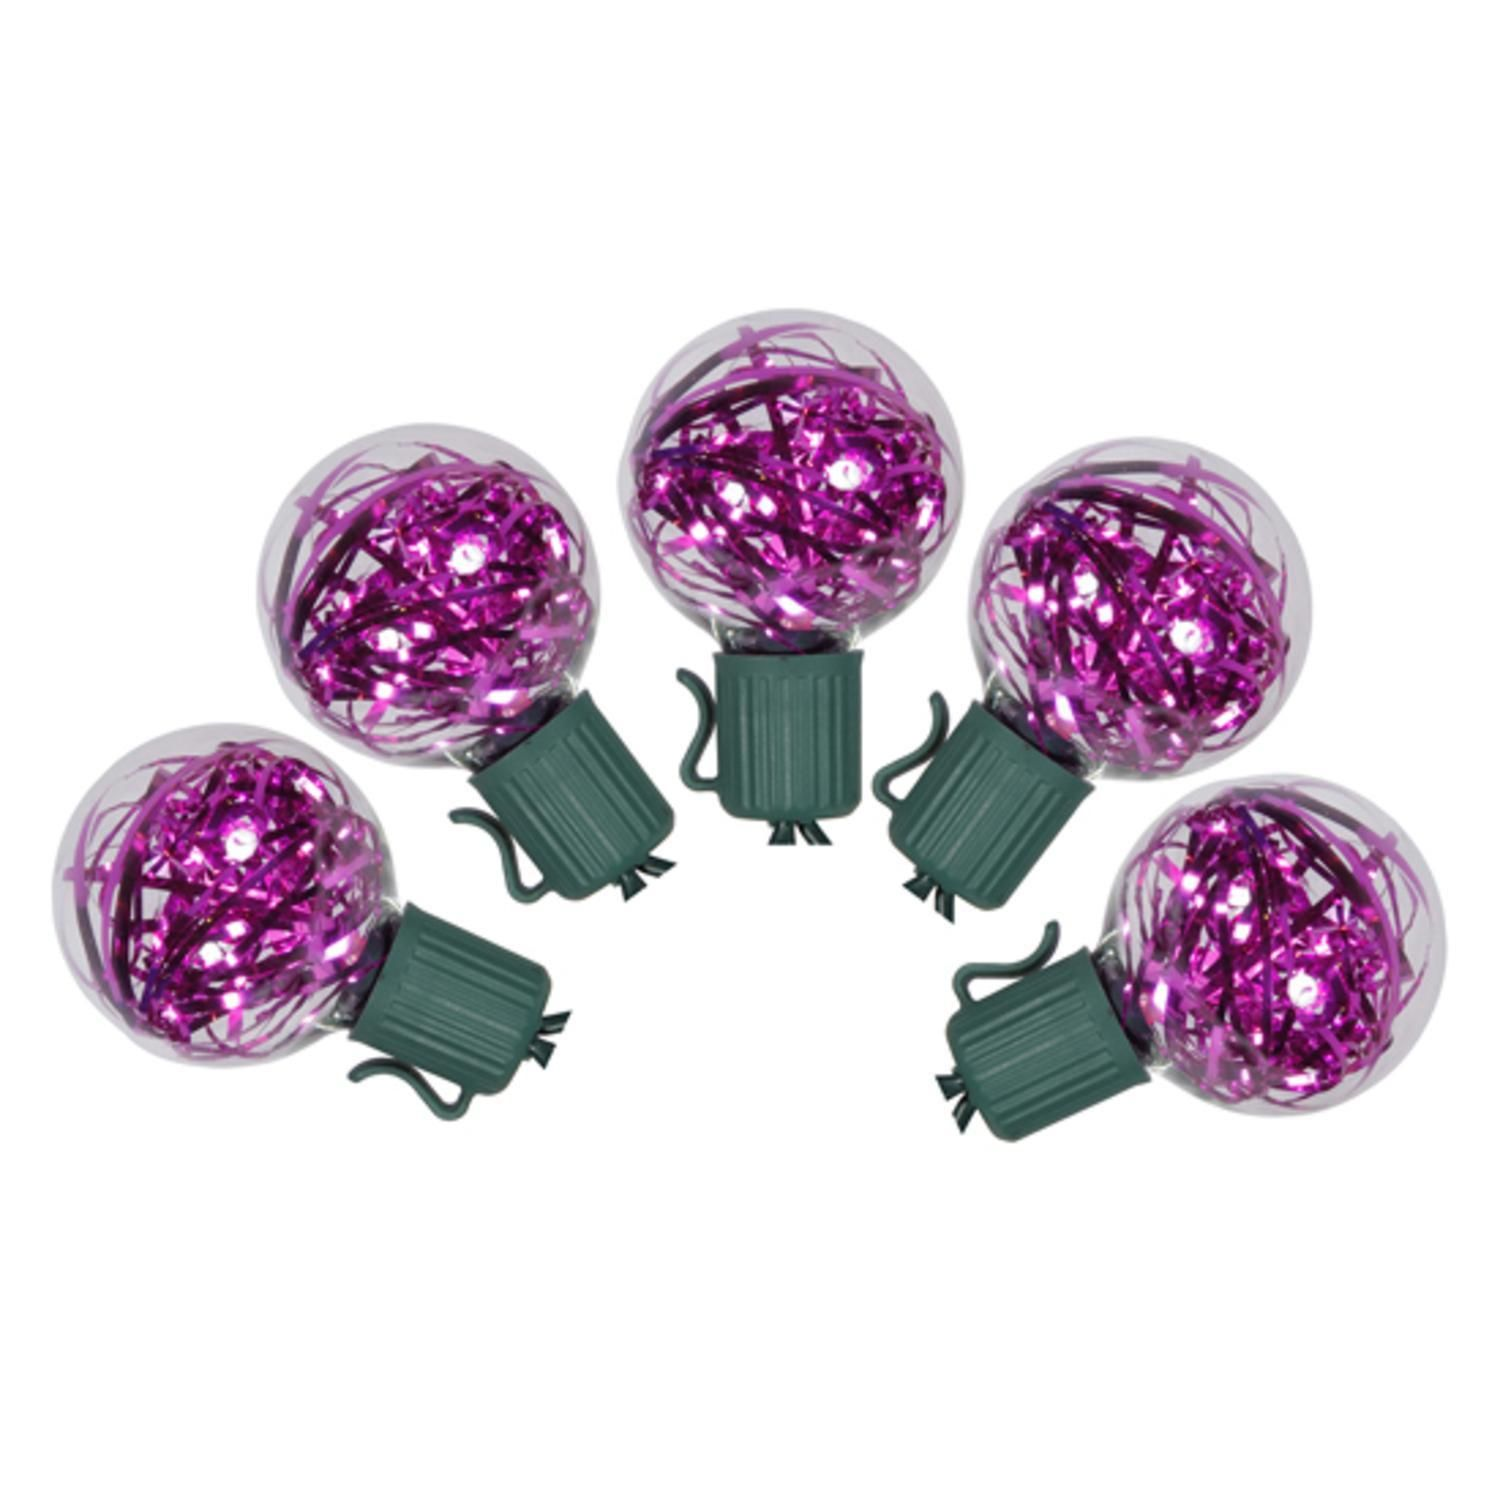 hight resolution of set of 25 pink led g40 tinsel christmas lights green wire